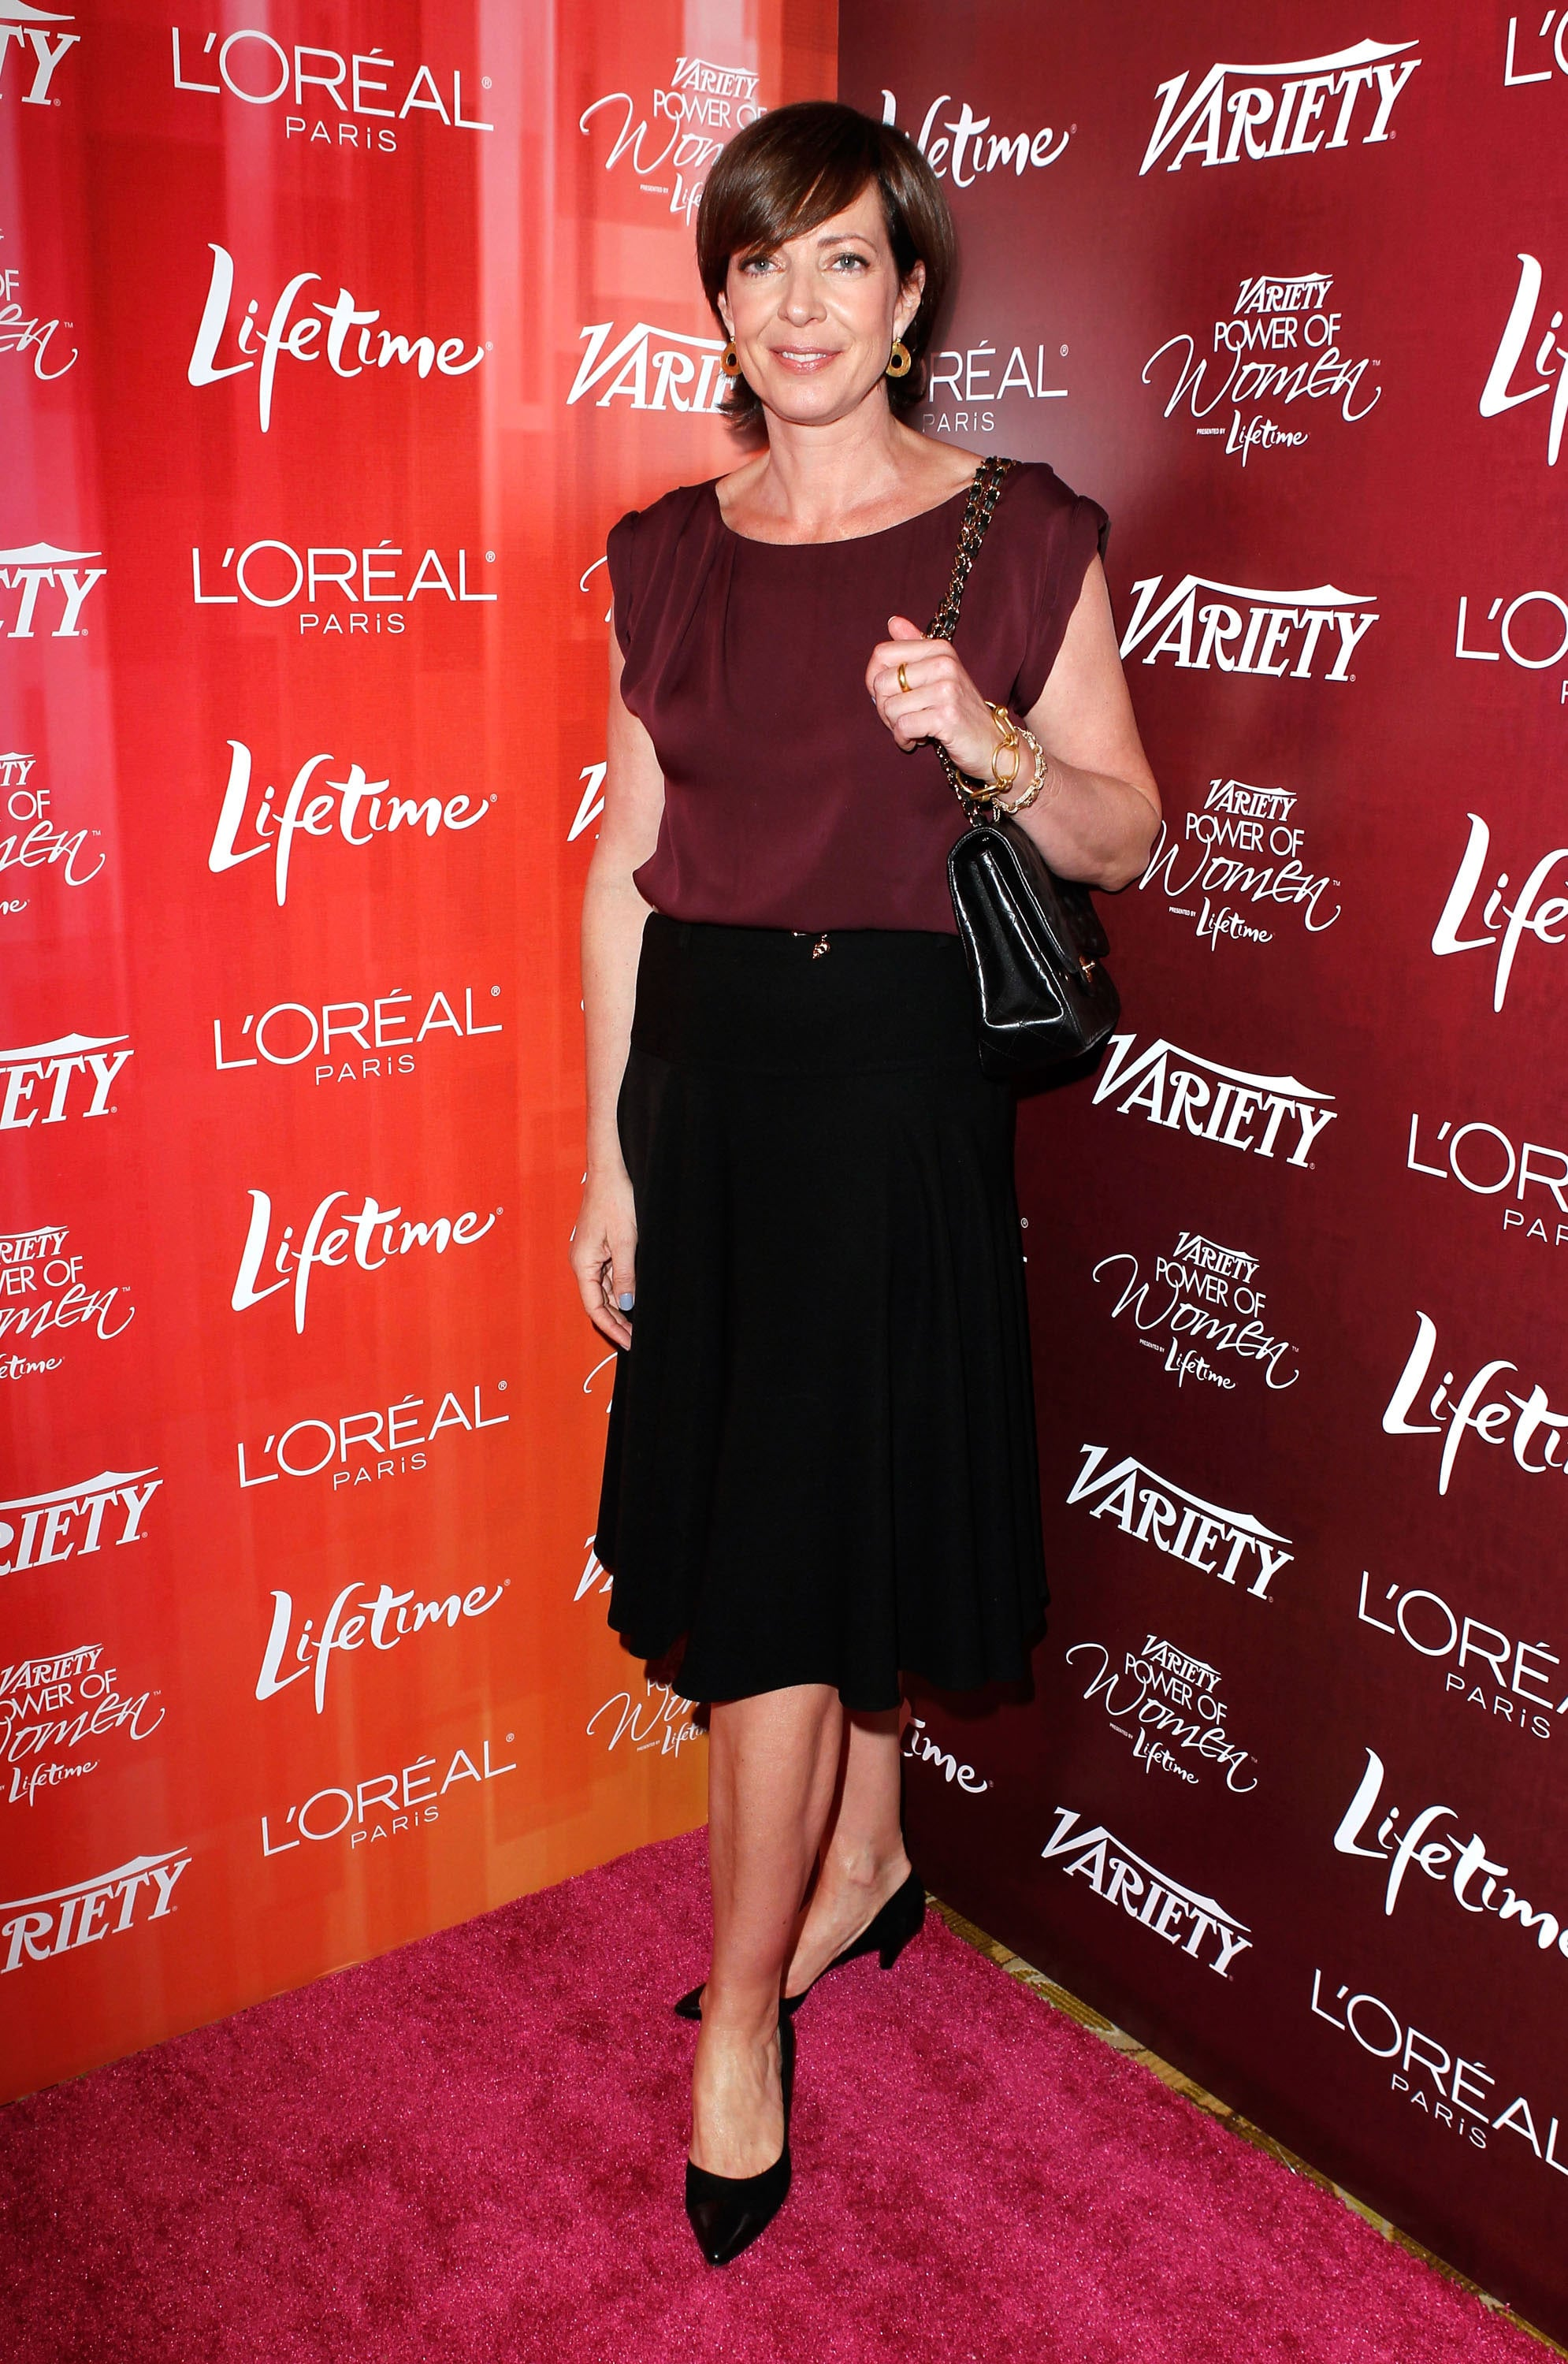 The Help's Allison Janney came dressed in a chic black skirt for her lunch with friends.